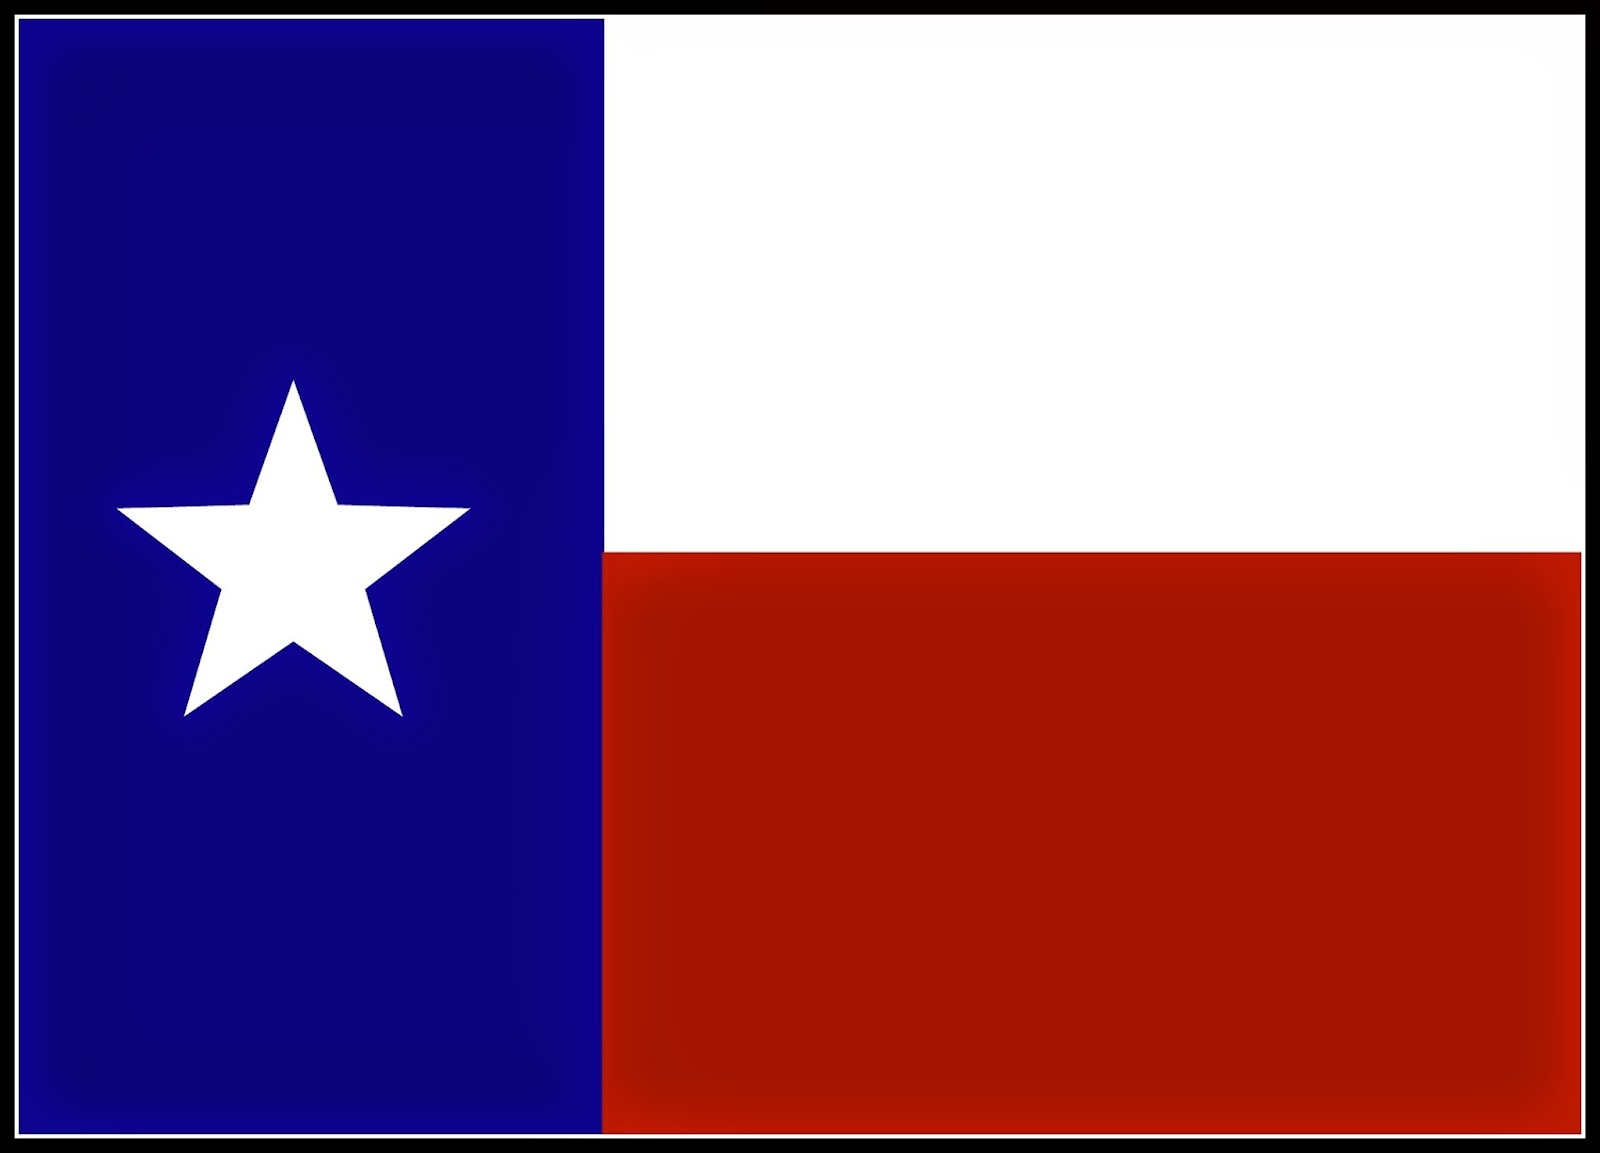 Texas: The Lone Star